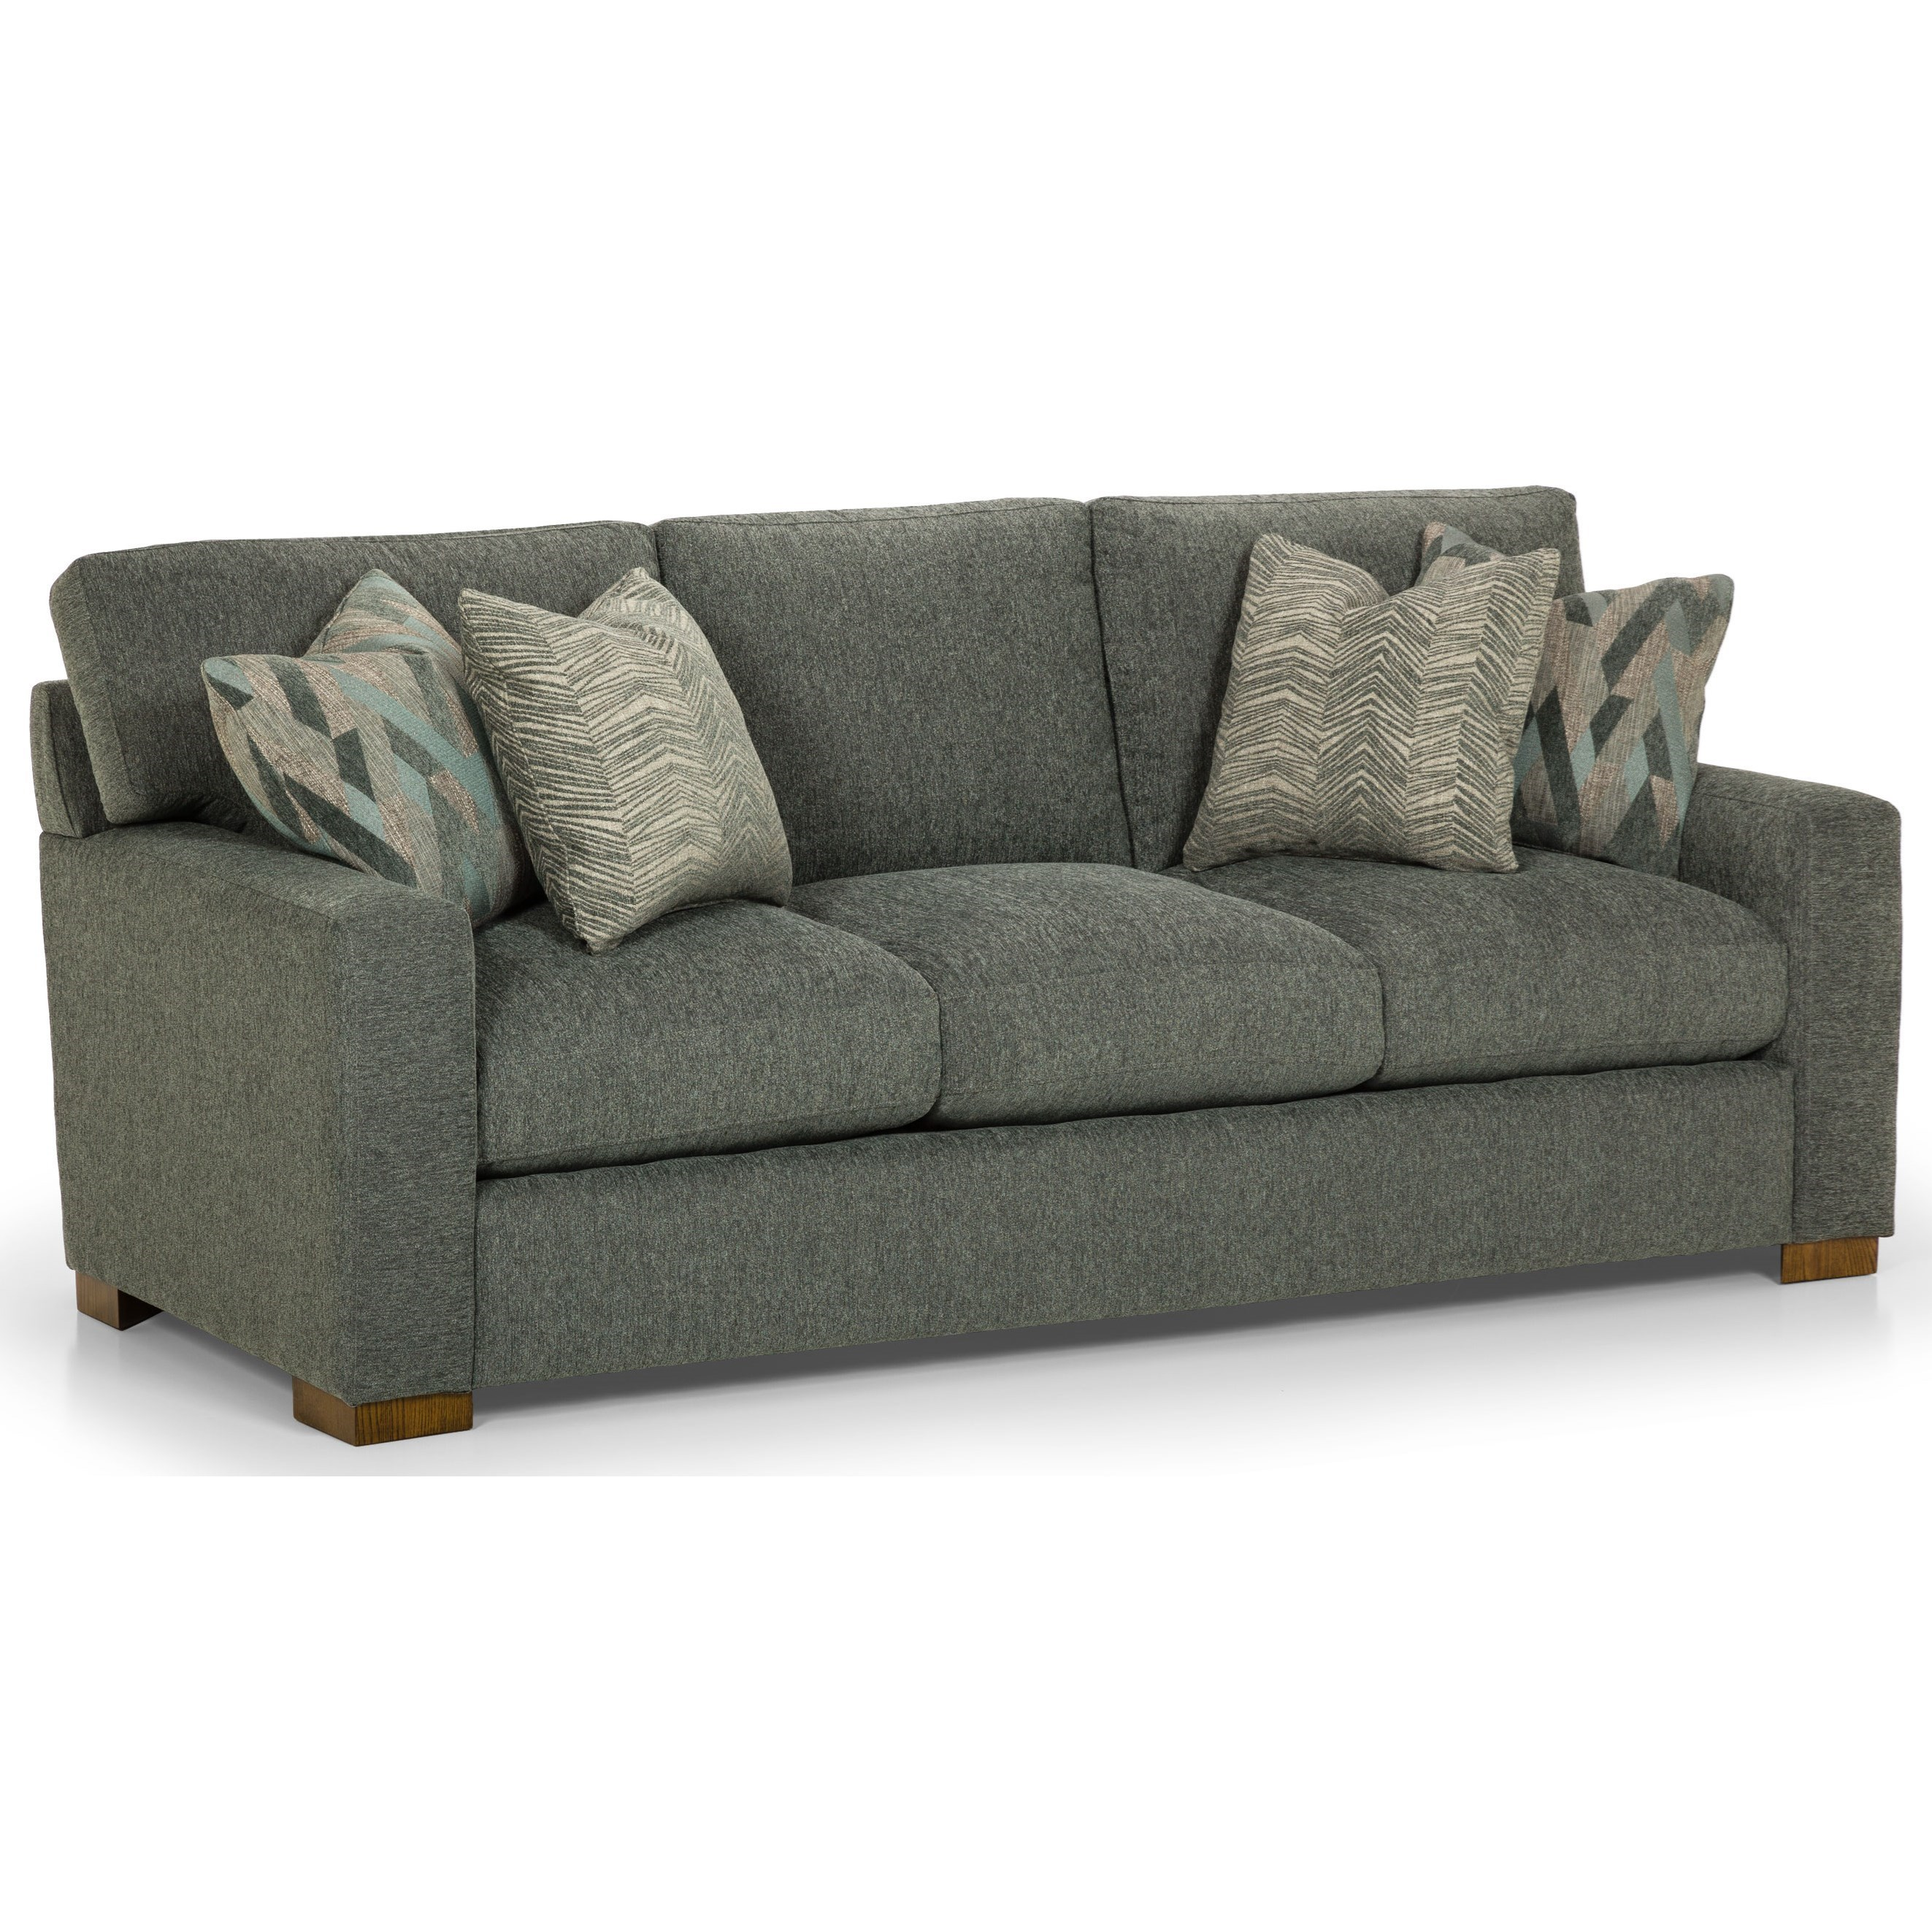 471 Sofa by Sunset Home at Sadler's Home Furnishings